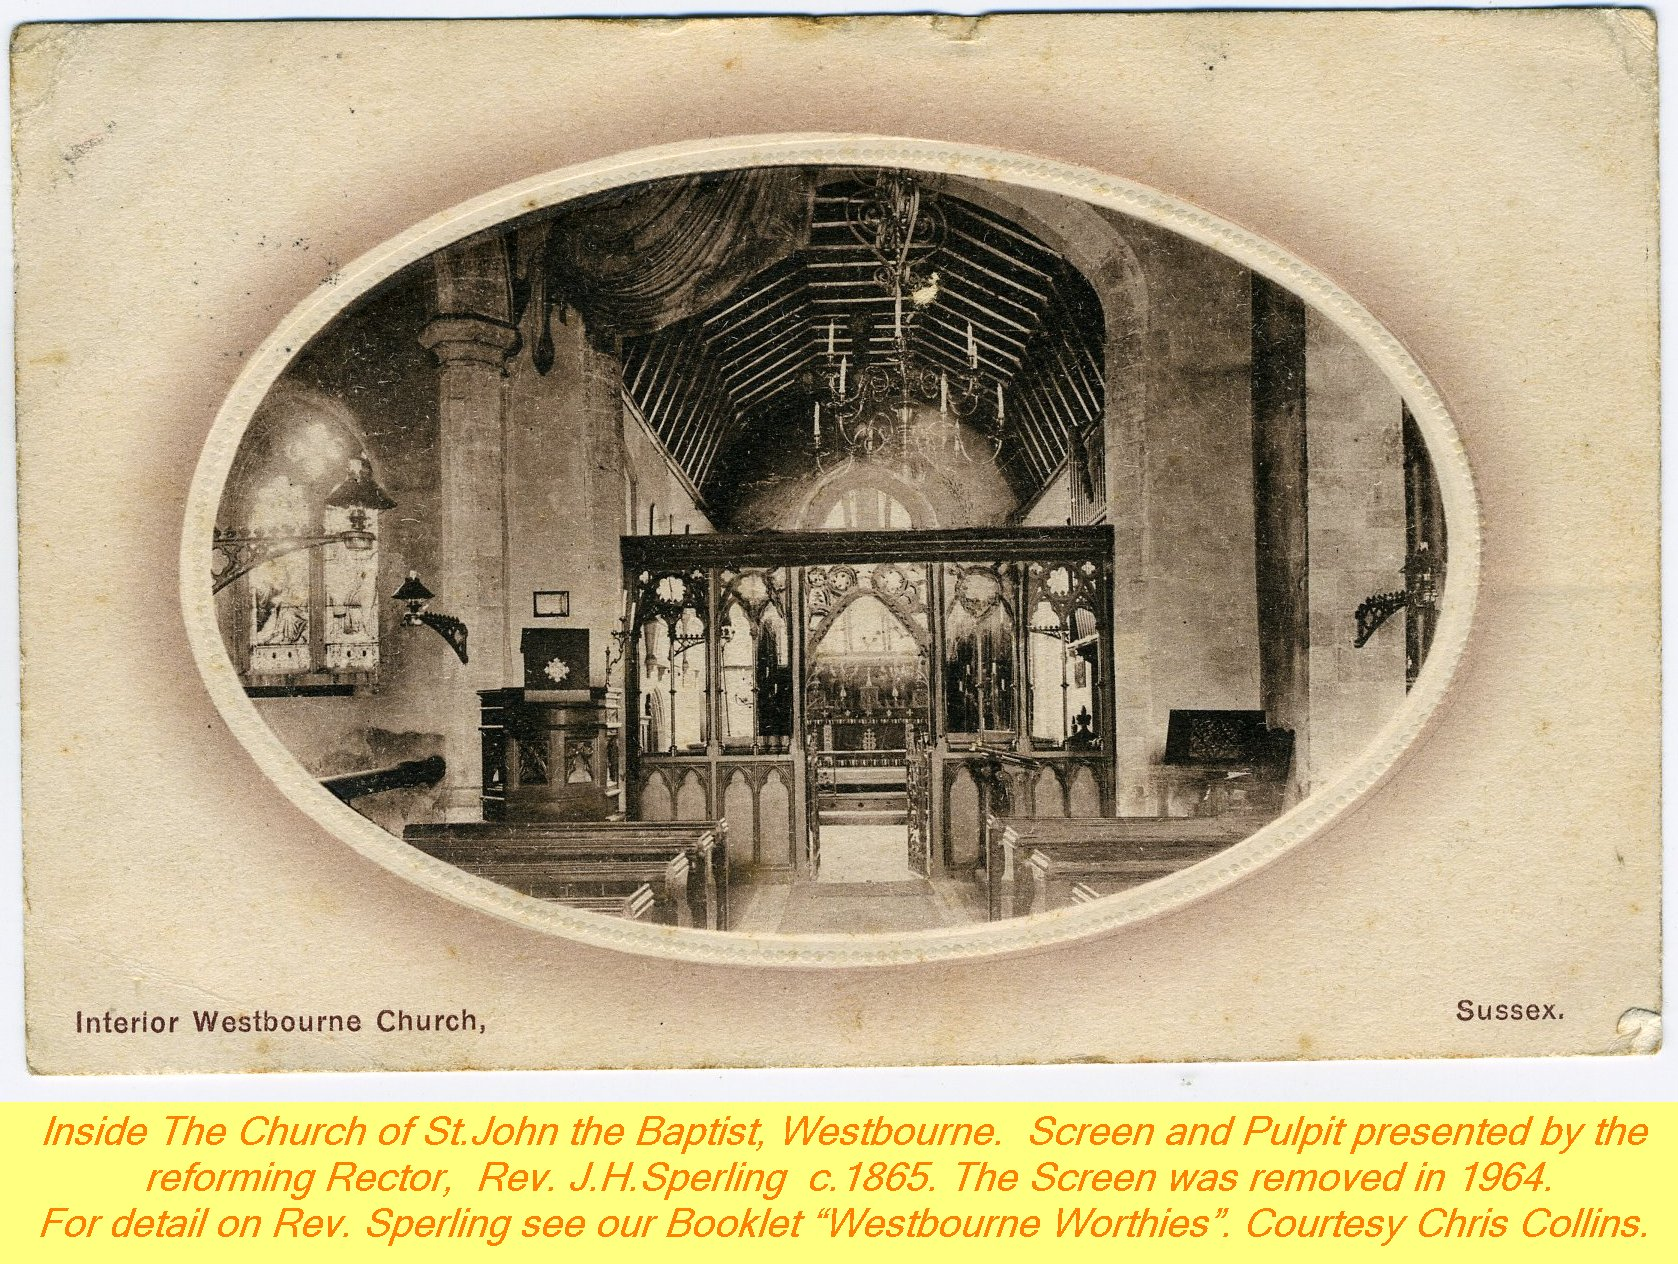 WESTBOURNE HISTORY PHOTO, CHURCH, St. JOHN, YEW, INTERIOR, SCREEN, SPERLING